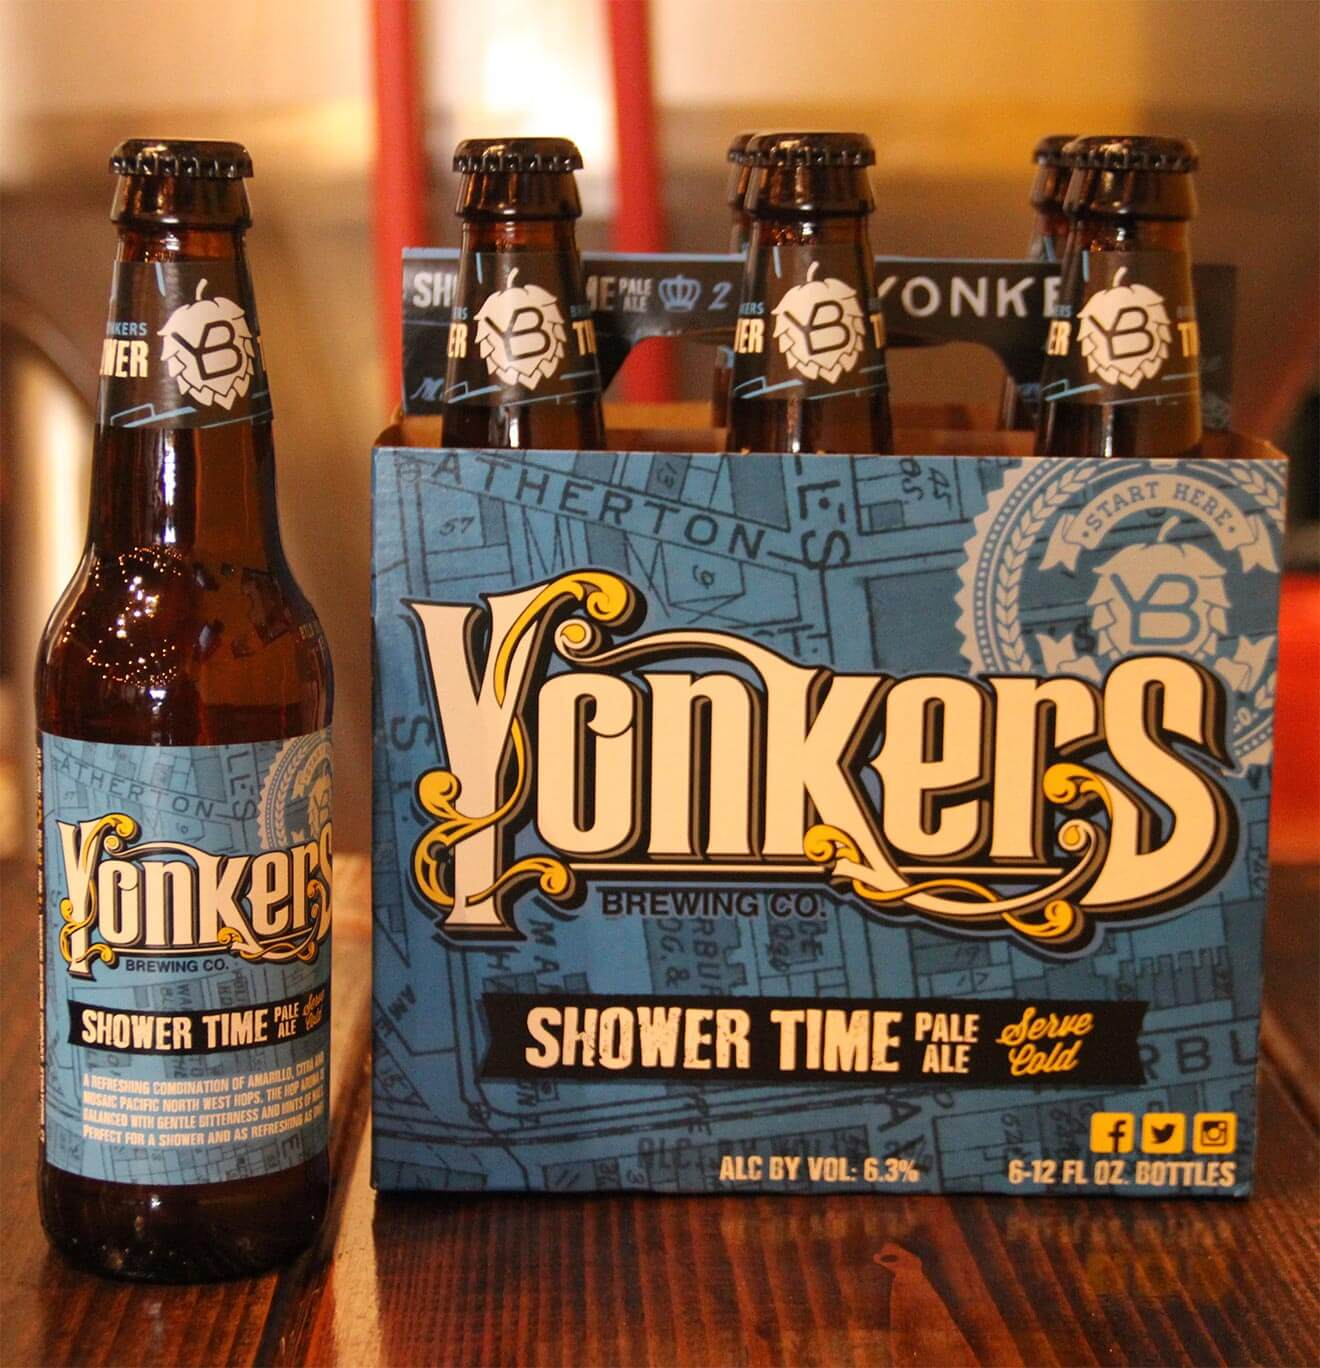 Shower TIme IPA, from Yonkers Brewing Co., beer news